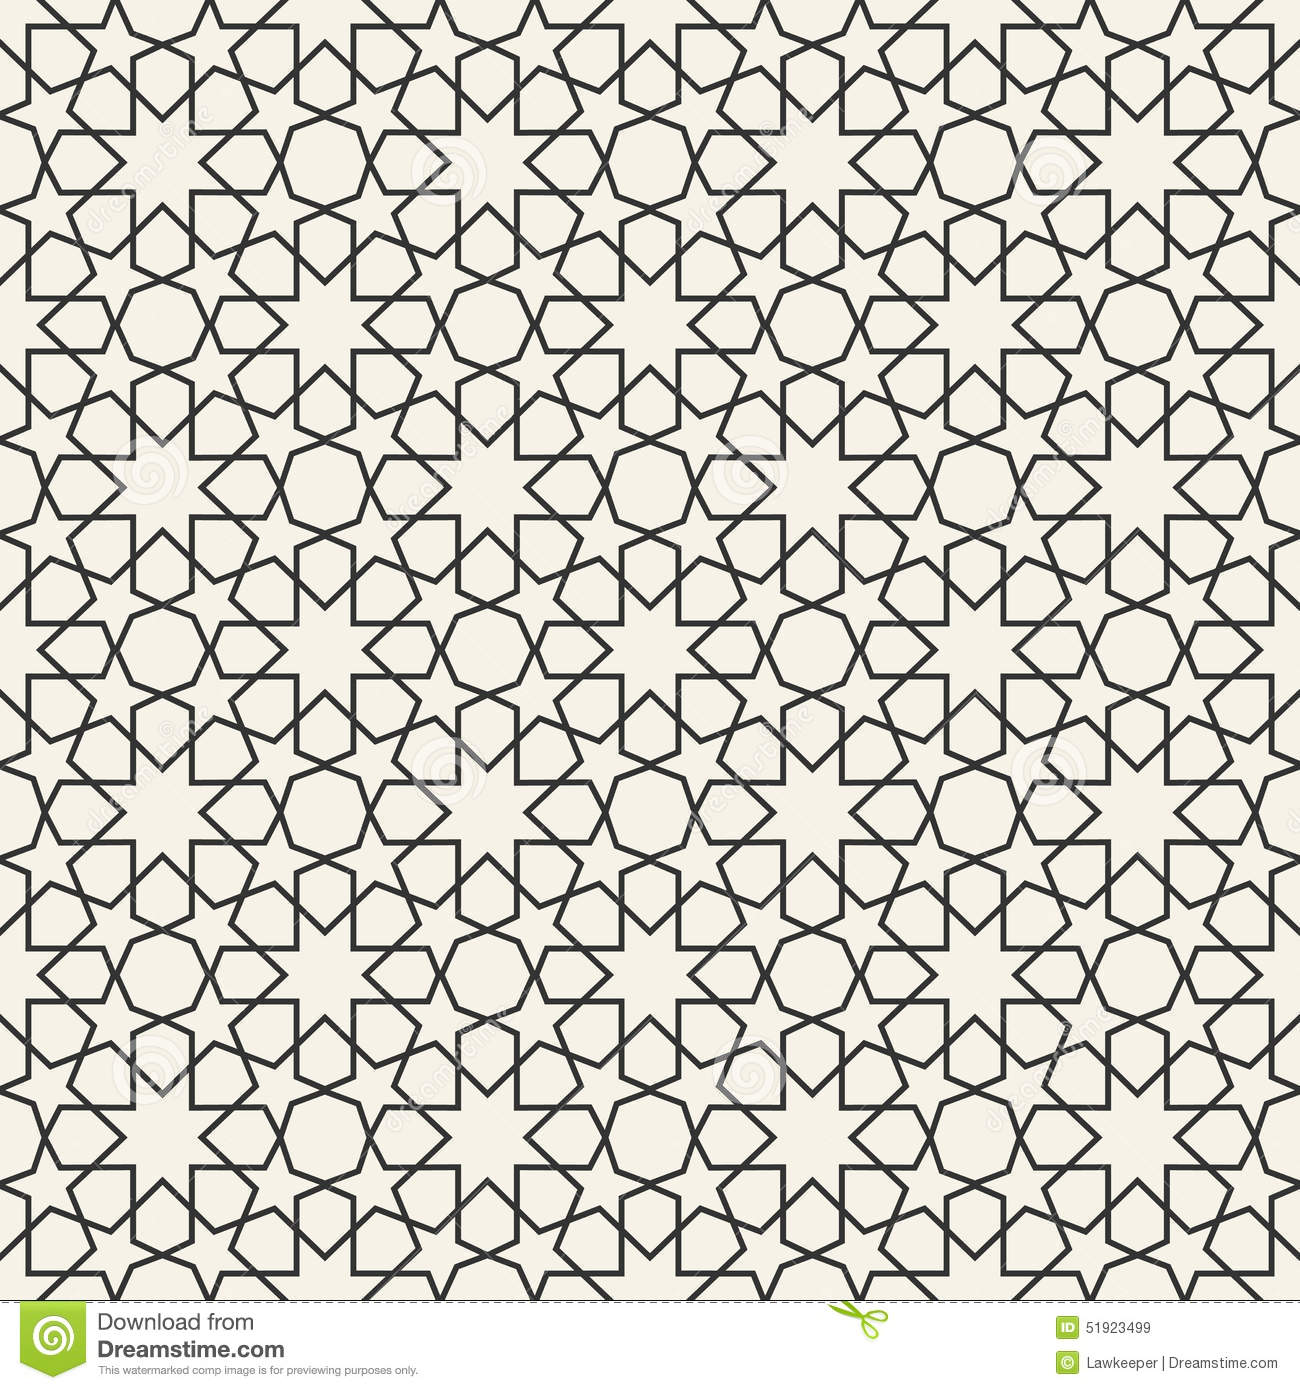 Popular   Wallpaper Horse Pattern - abstract-seamless-geometric-islamic-wallpaper-pattern-your-design-51923499  Picture_872748.jpg